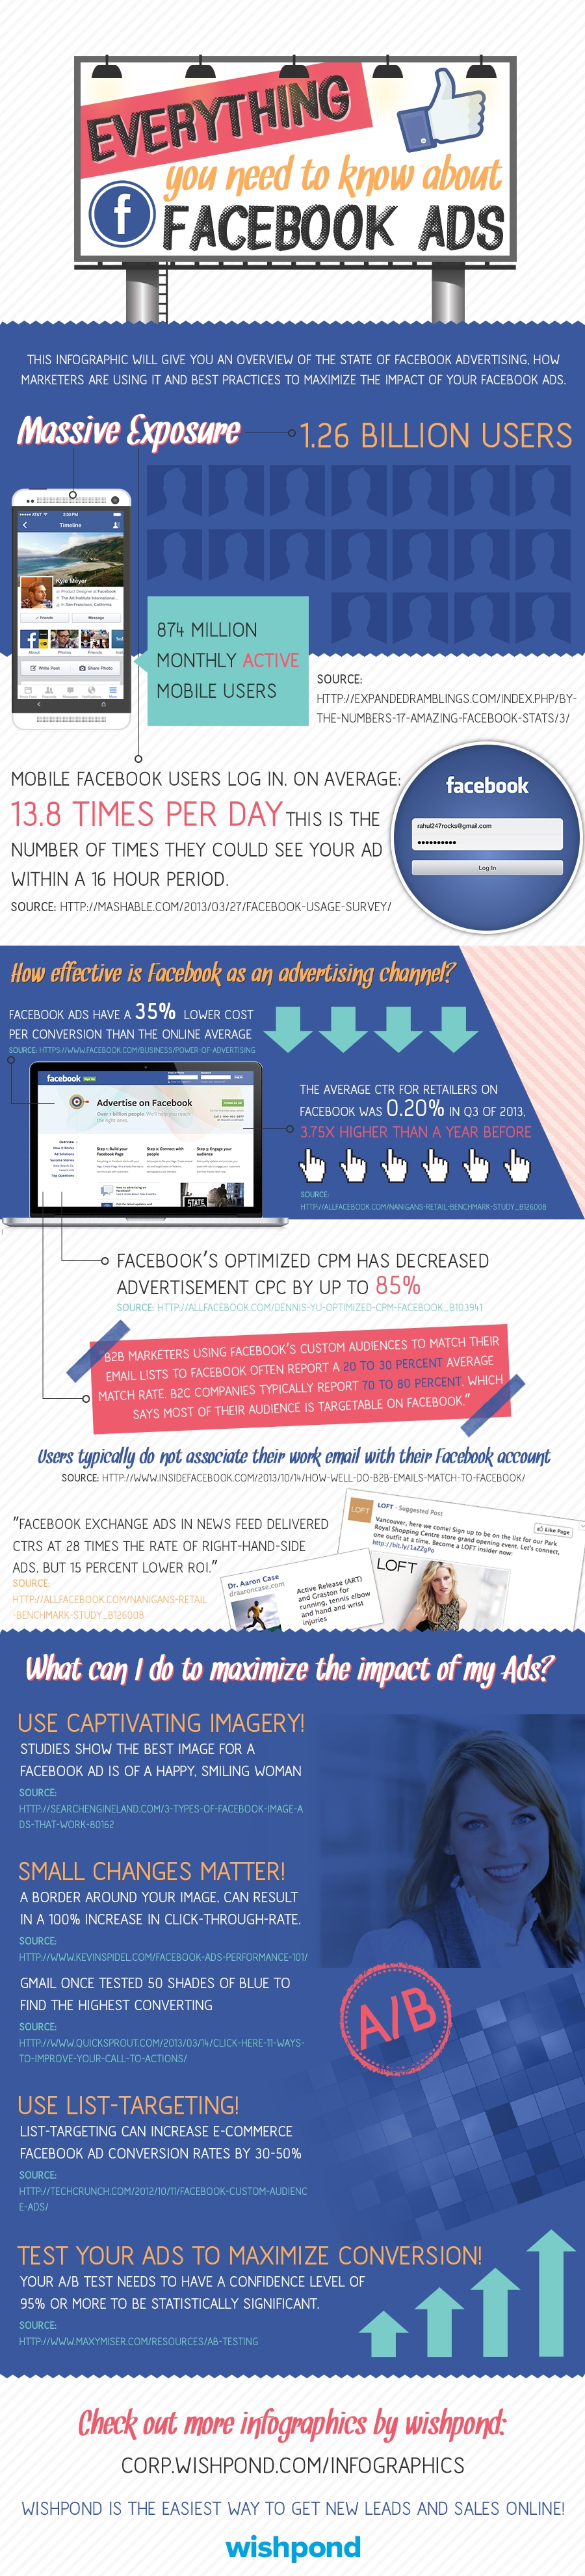 Infographic: Facebook advertising overview